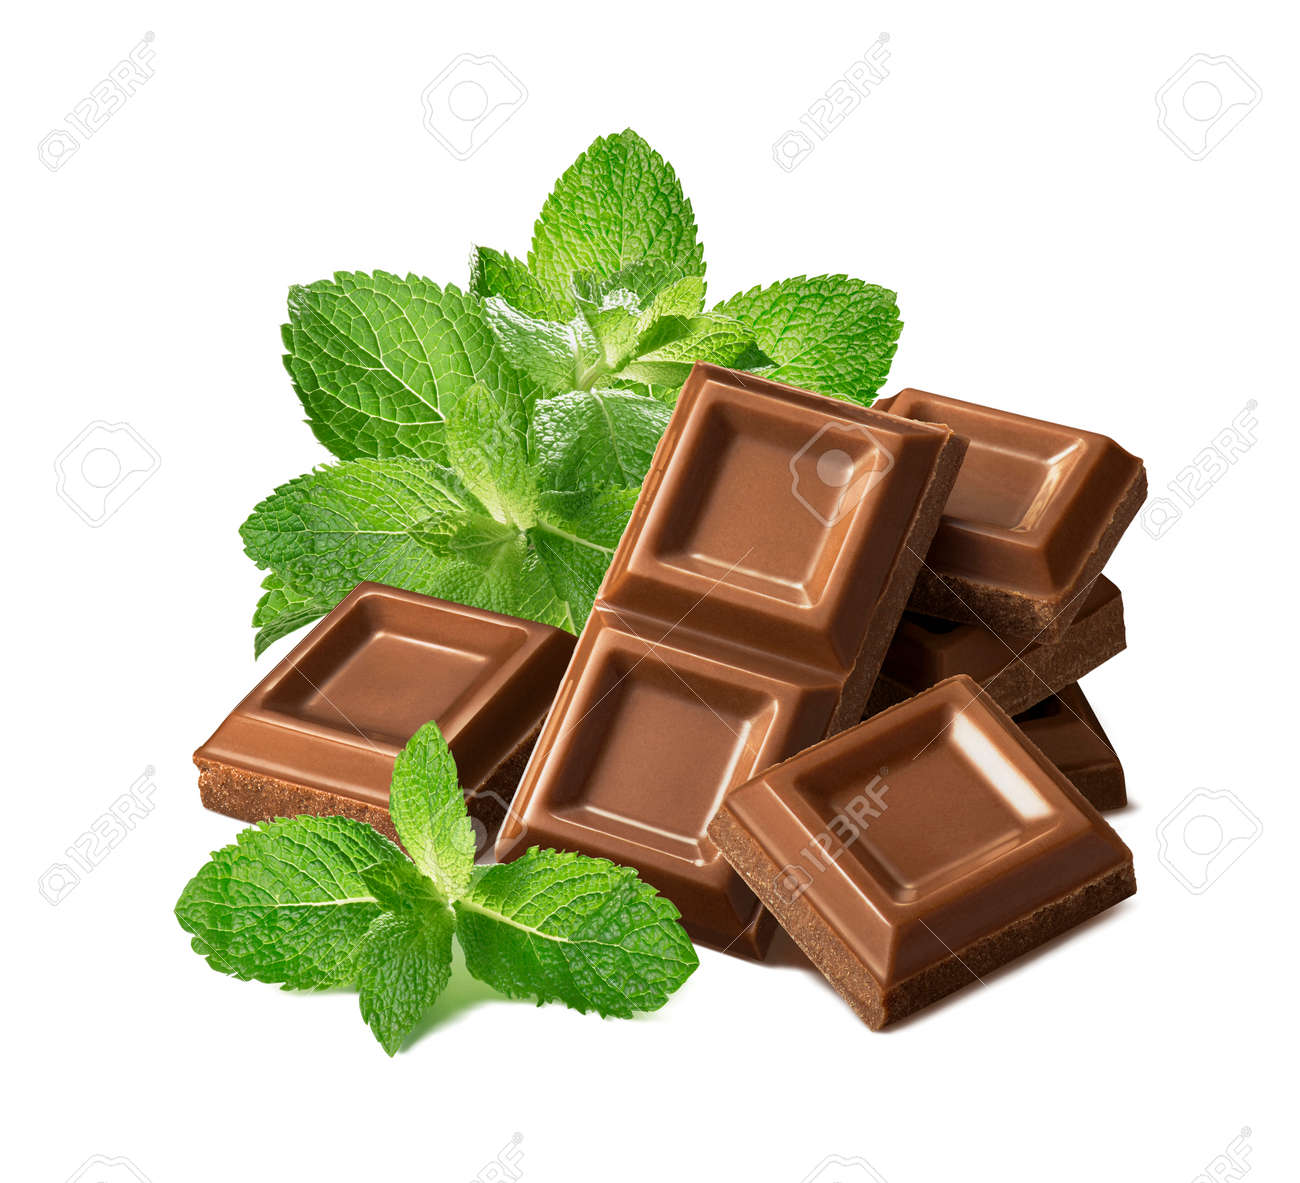 Fresh mint leaves and pile of chocolate pieces isolated on white background. Package design element - 173413979